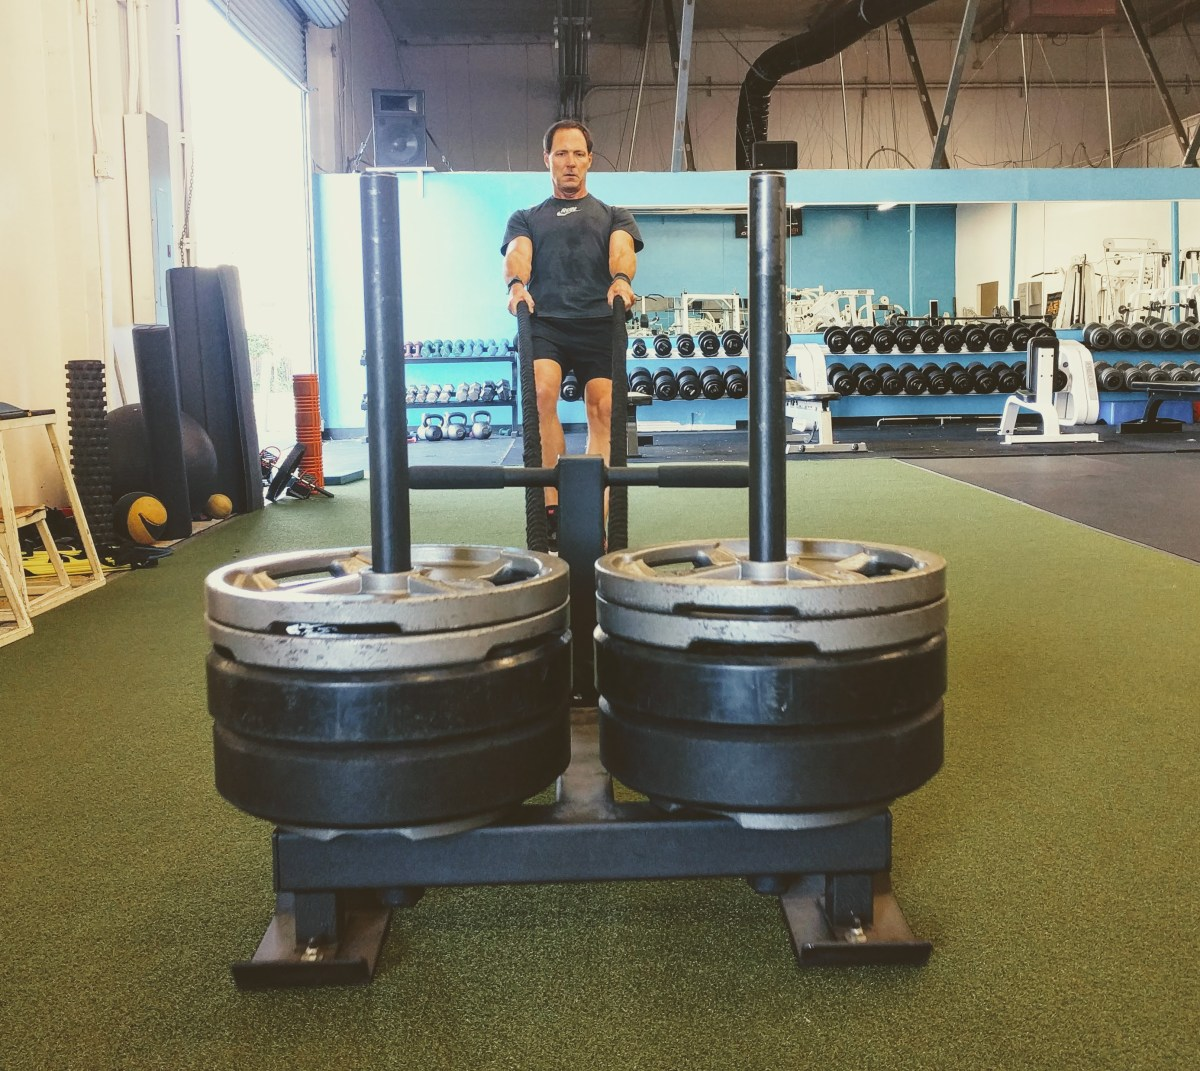 How long to rest between sets? Man Pulling a heavy sled.